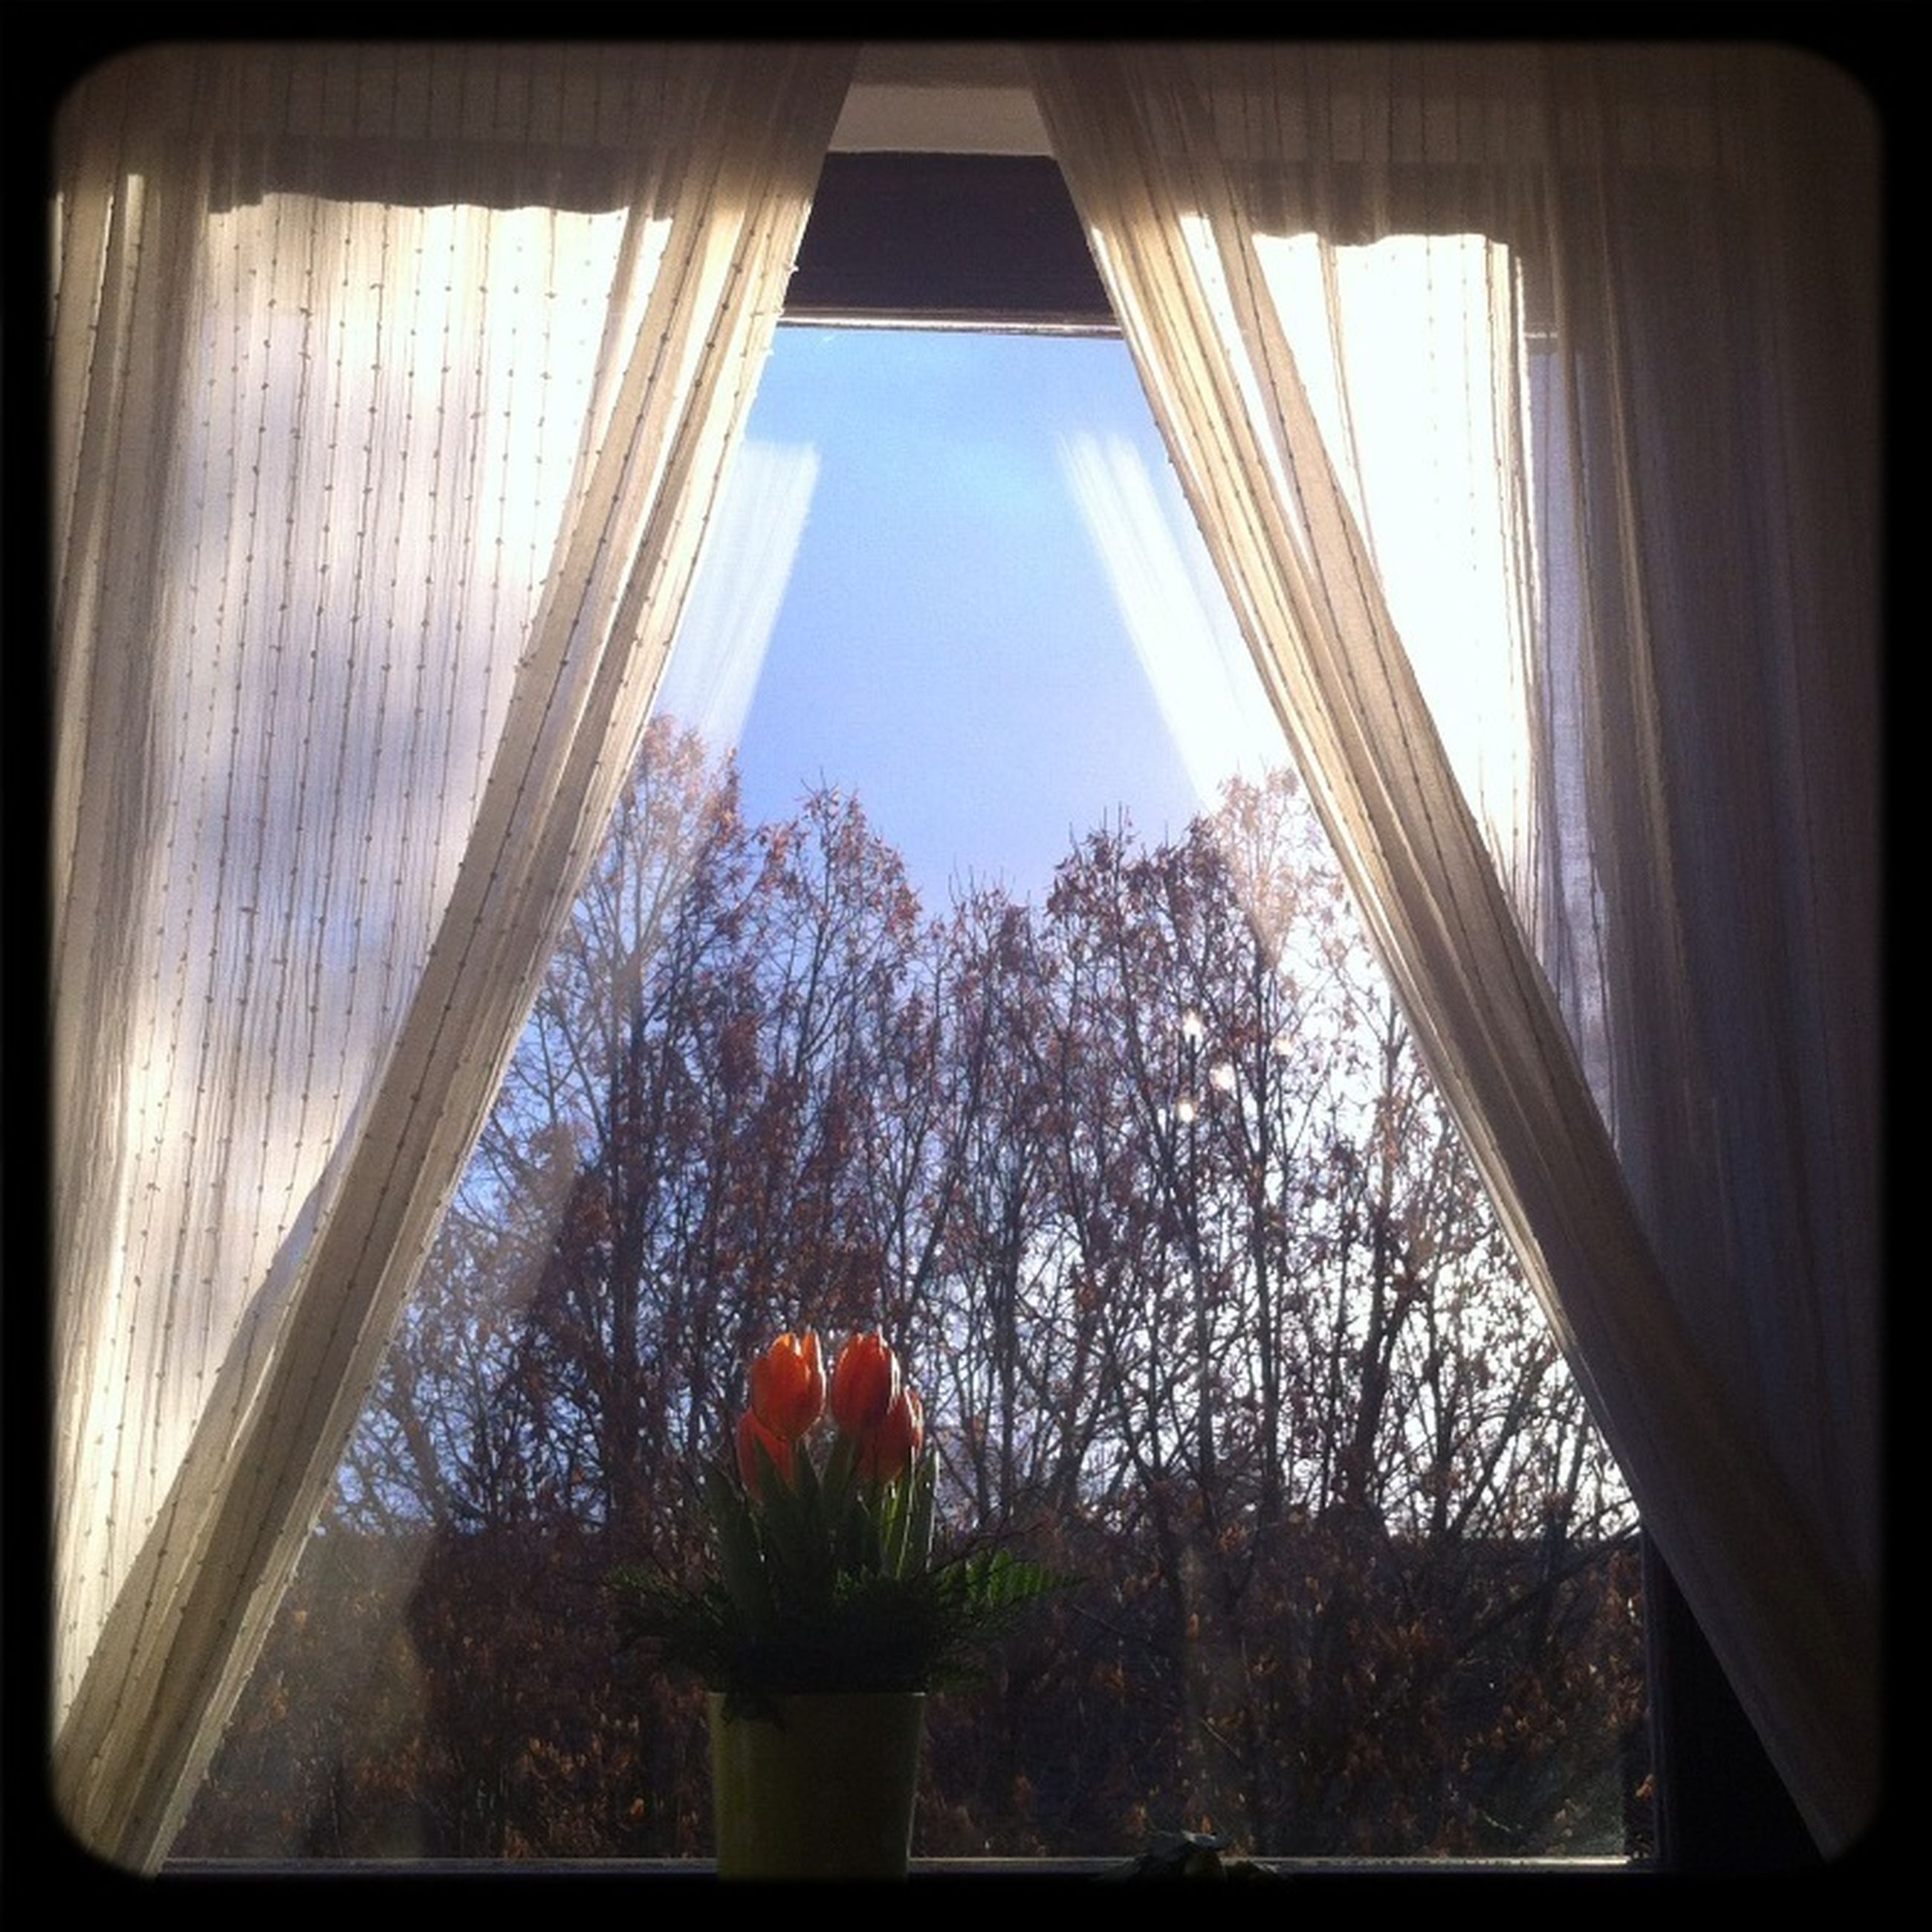 window, indoors, glass - material, transparent, tree, home interior, window sill, growth, plant, curtain, potted plant, house, sunlight, glass, built structure, looking through window, day, architecture, no people, auto post production filter